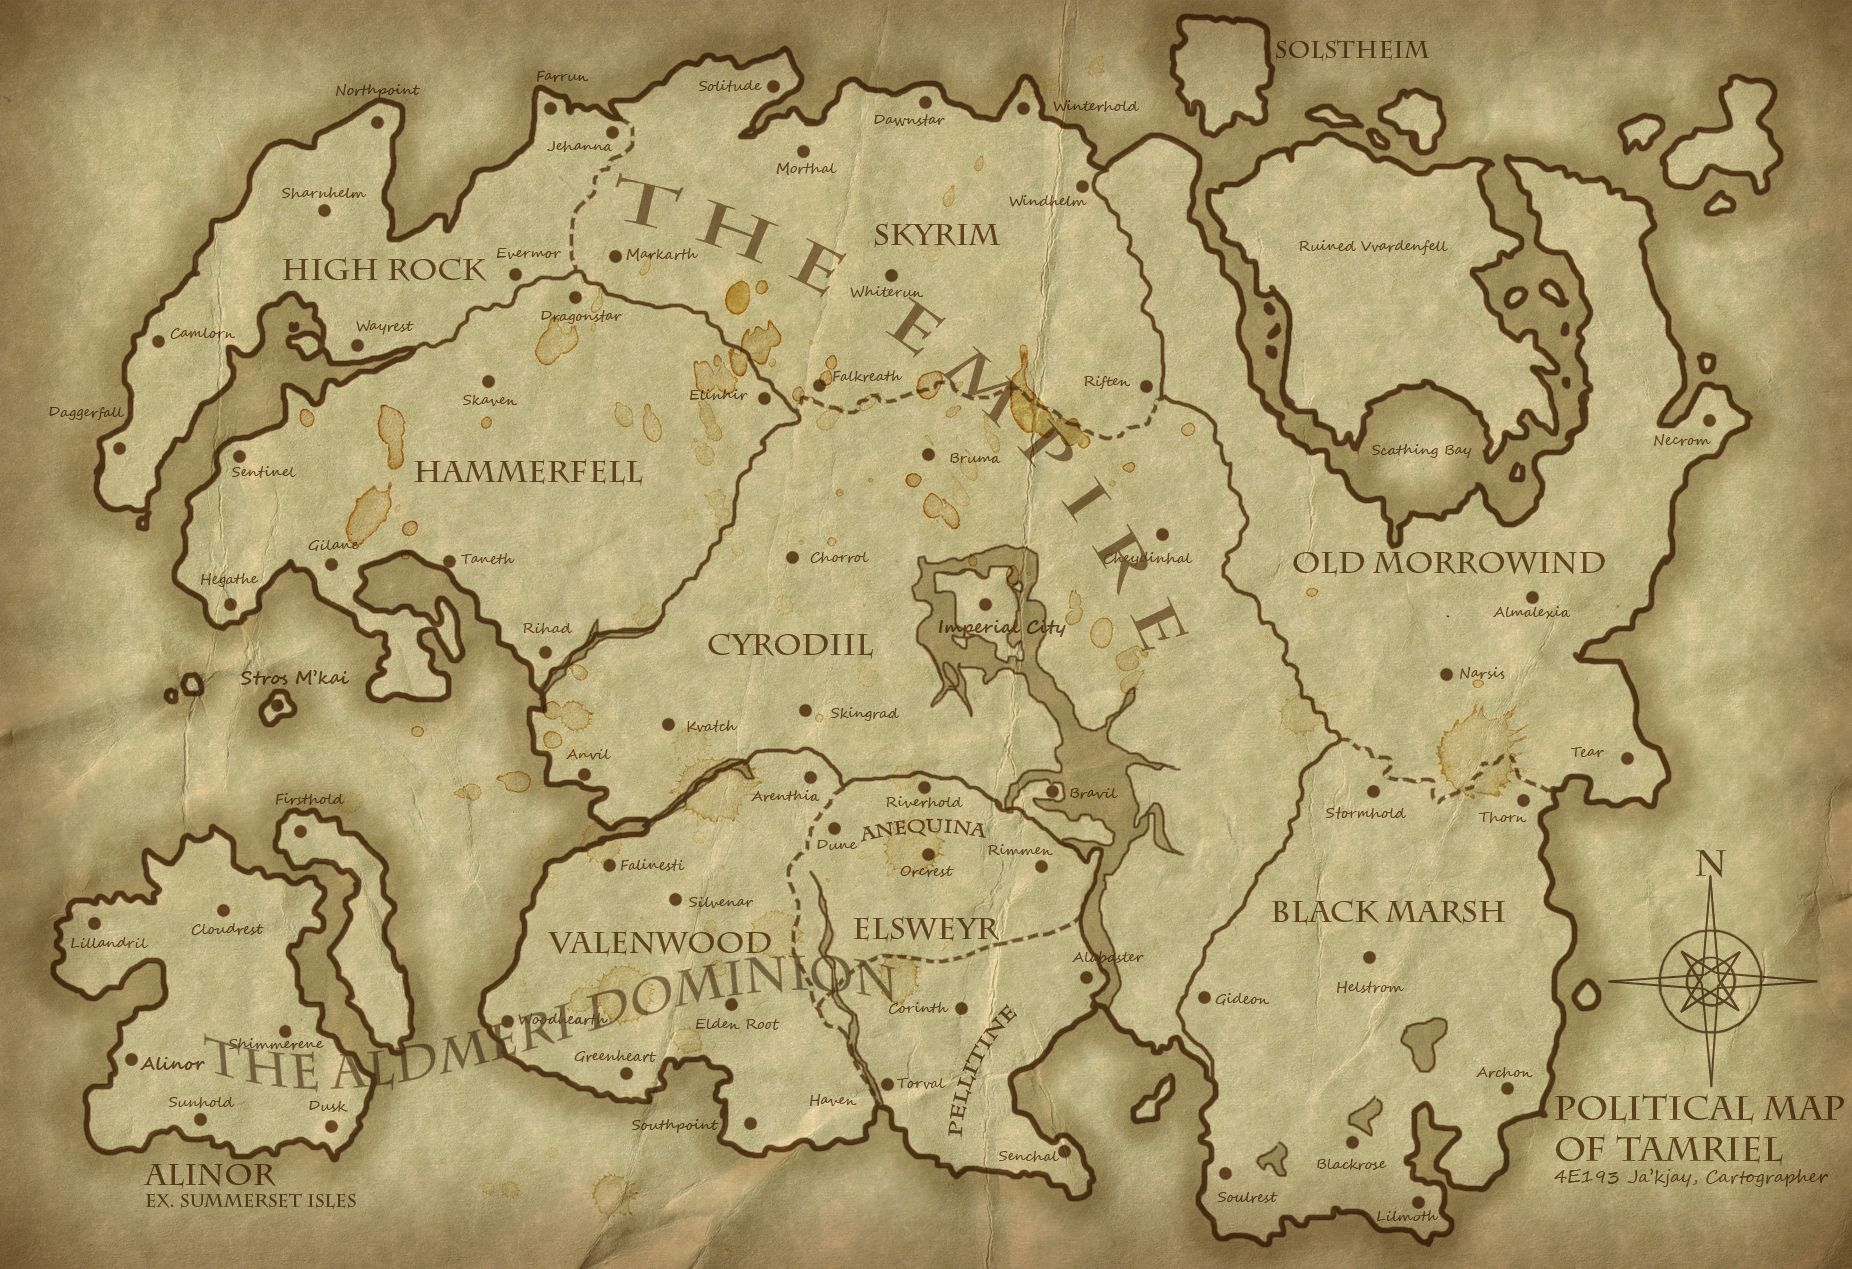 A Map Of All Of Tamriel Political Map Of Tamriel 4e193 Revised